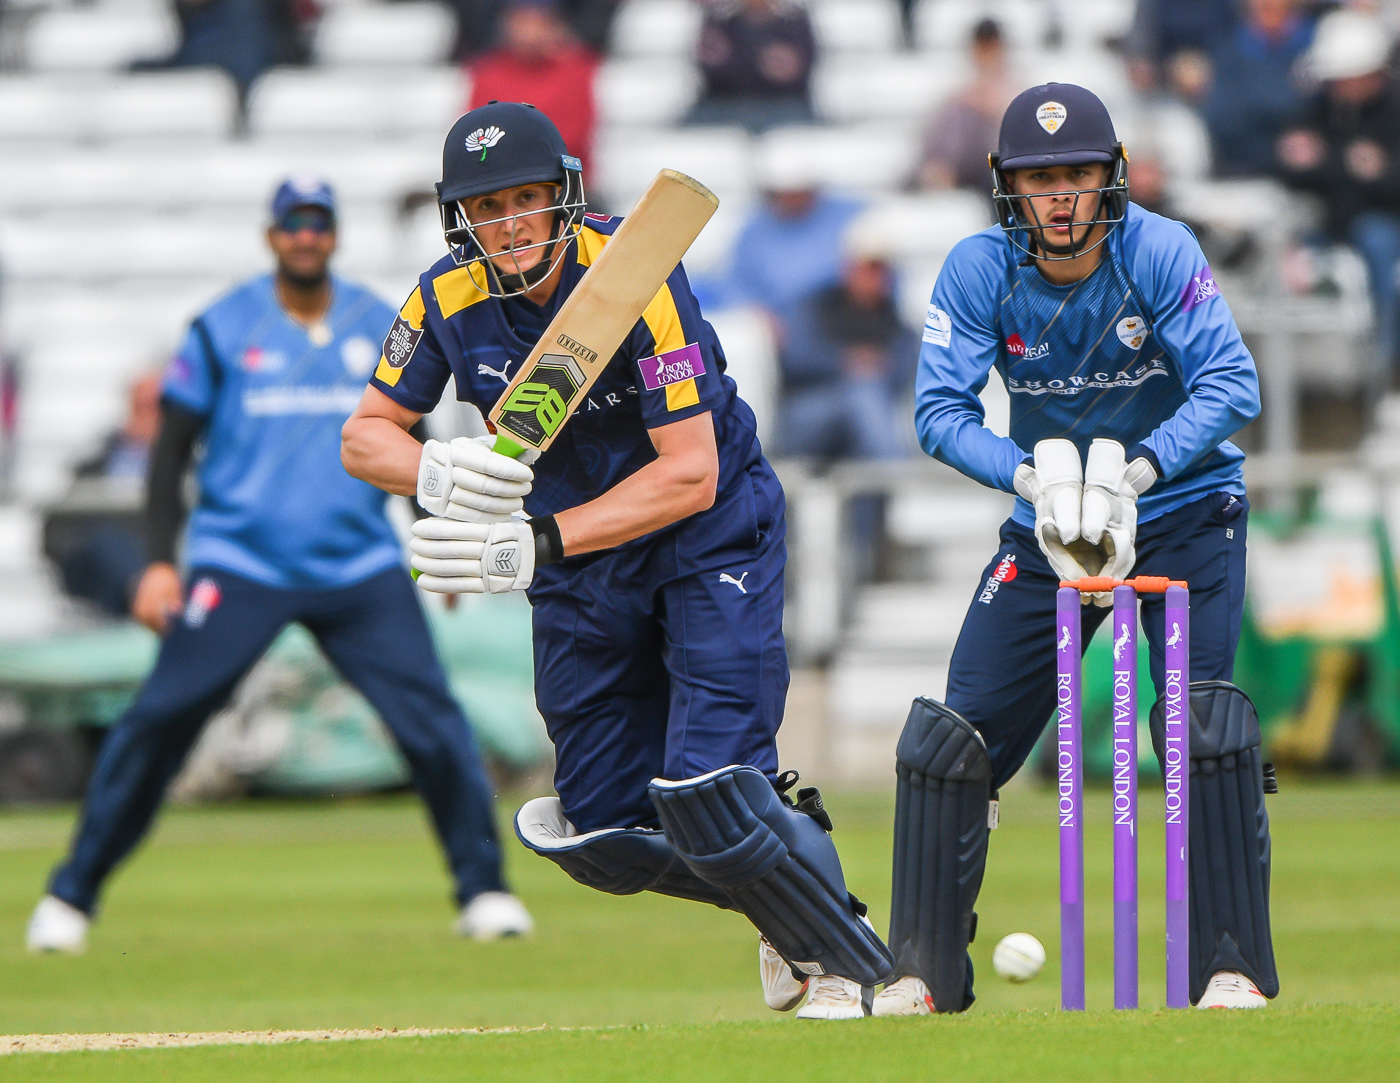 Tom Kohler-Cadmore fired 79 for Yorkshire in their rain-affected clash against Derbyshire in the Royal London One-Day Cup at Headingley. Picture: Ray Spencer